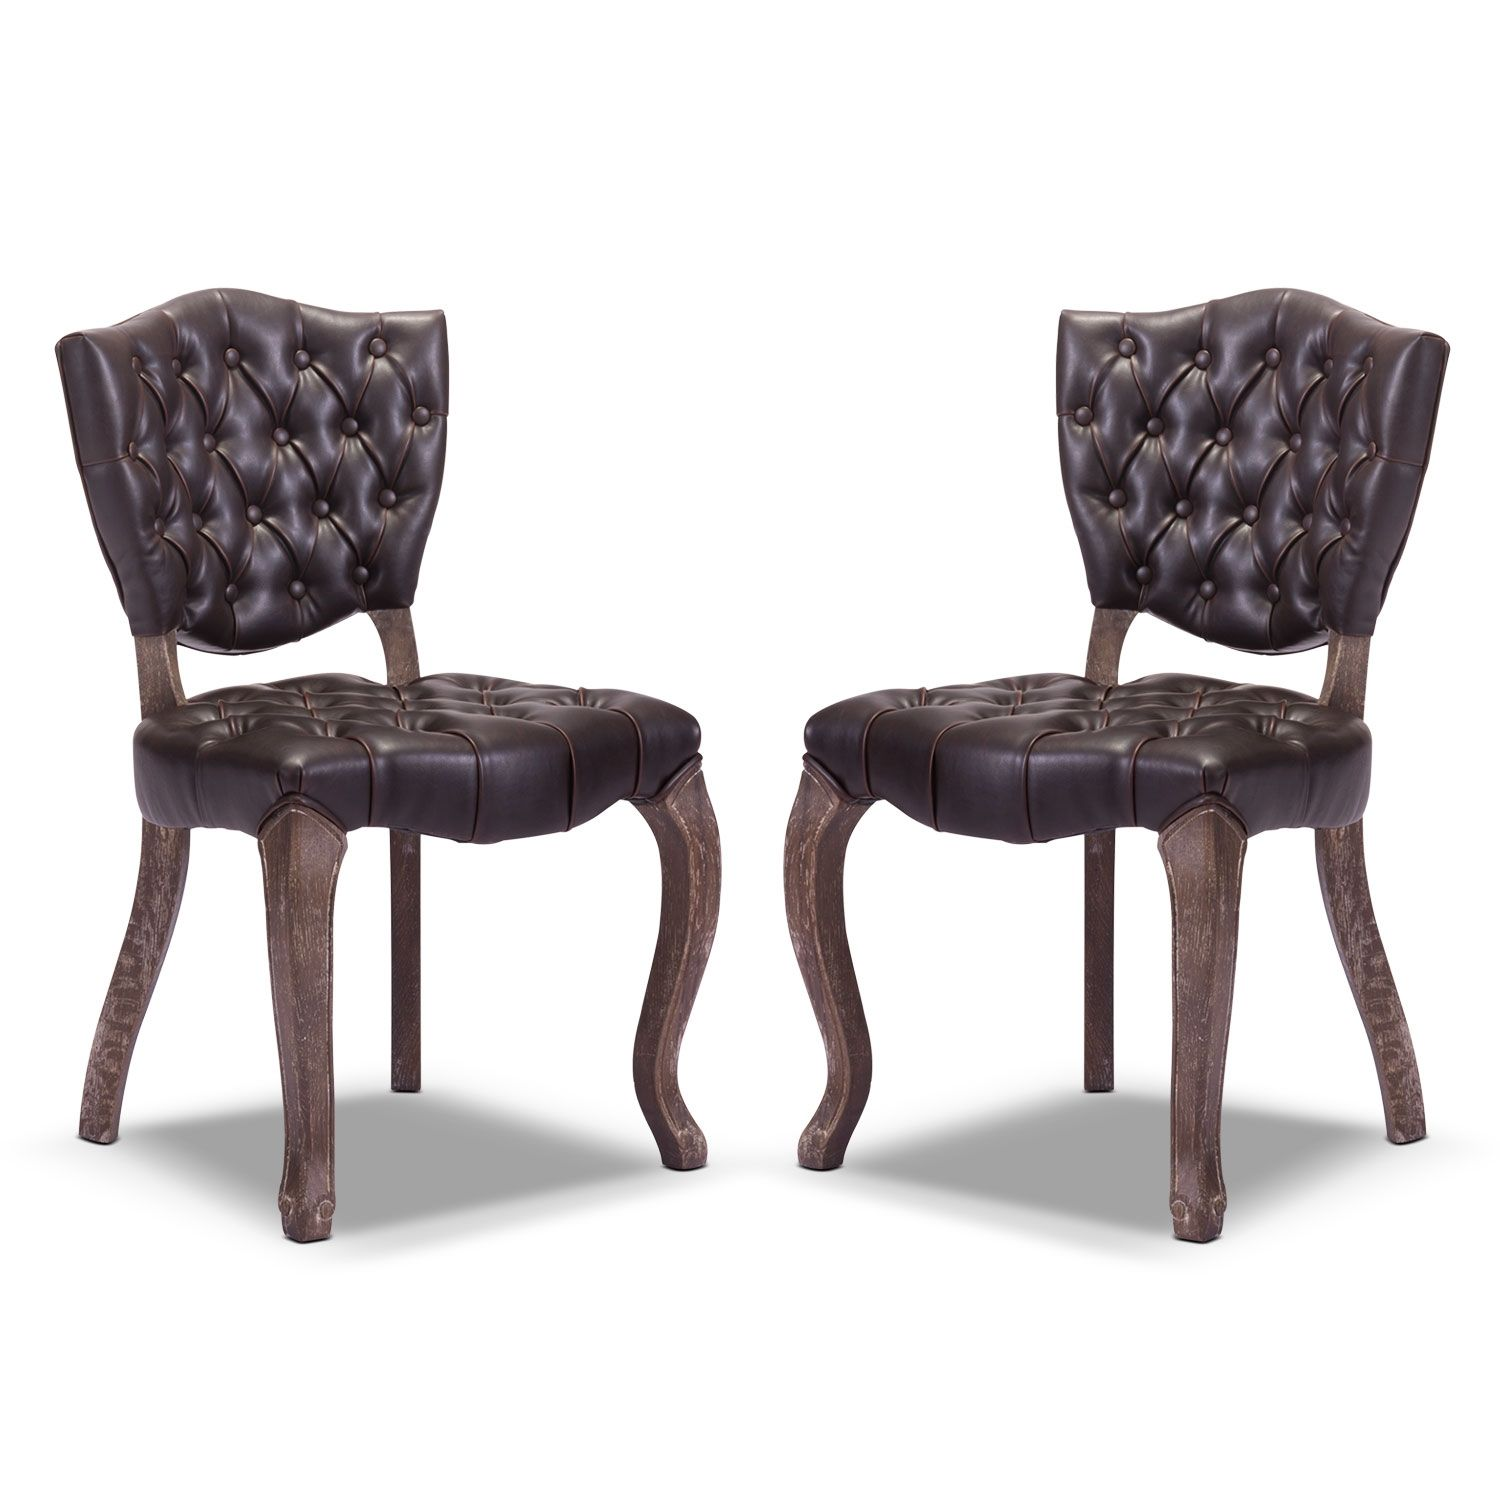 shield 2 pack chairs american signature furniture shabby chic